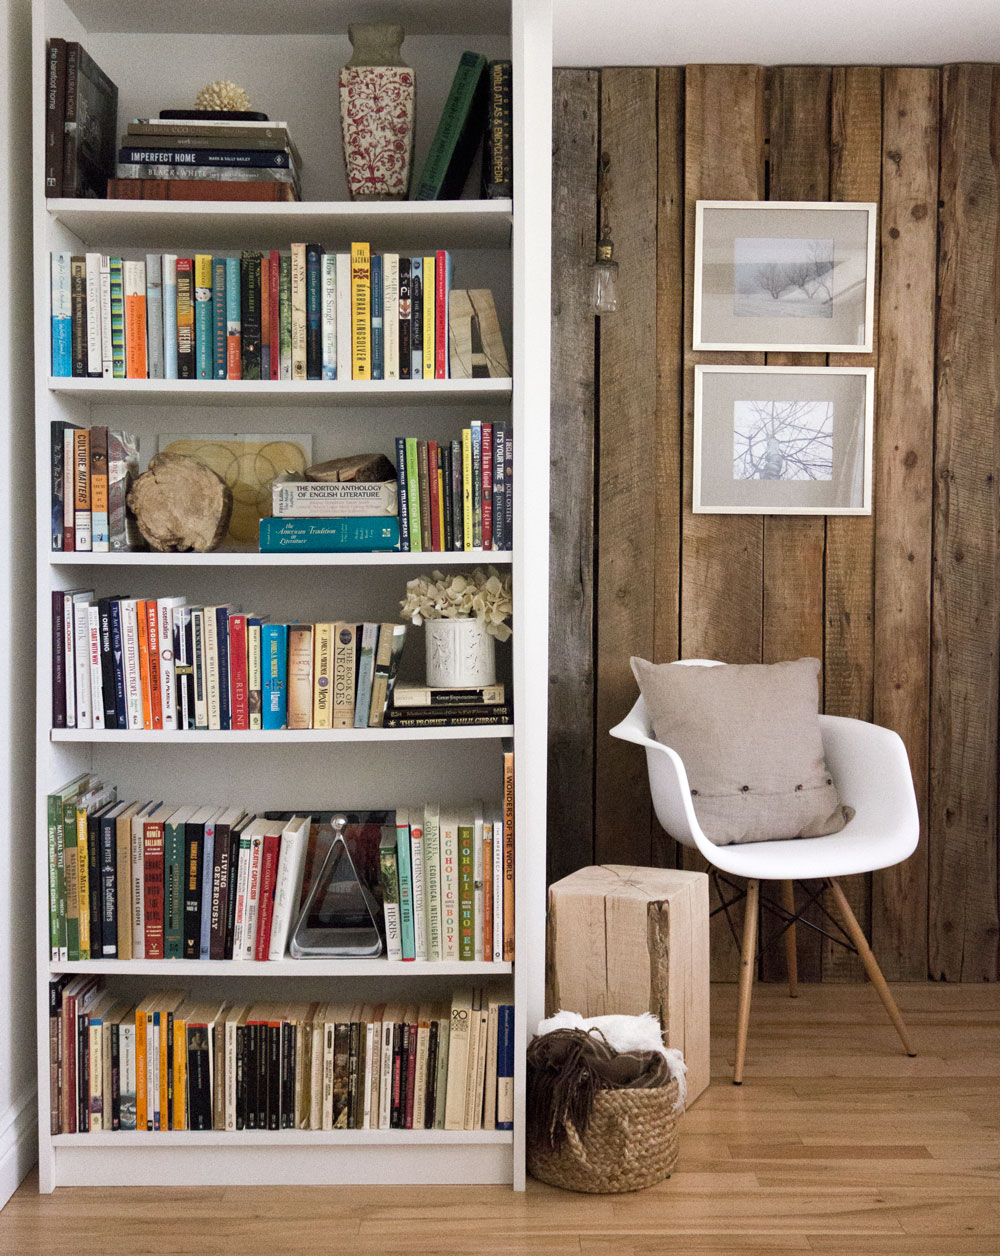 The allure of imperfection in our homes - barn board wall in living room